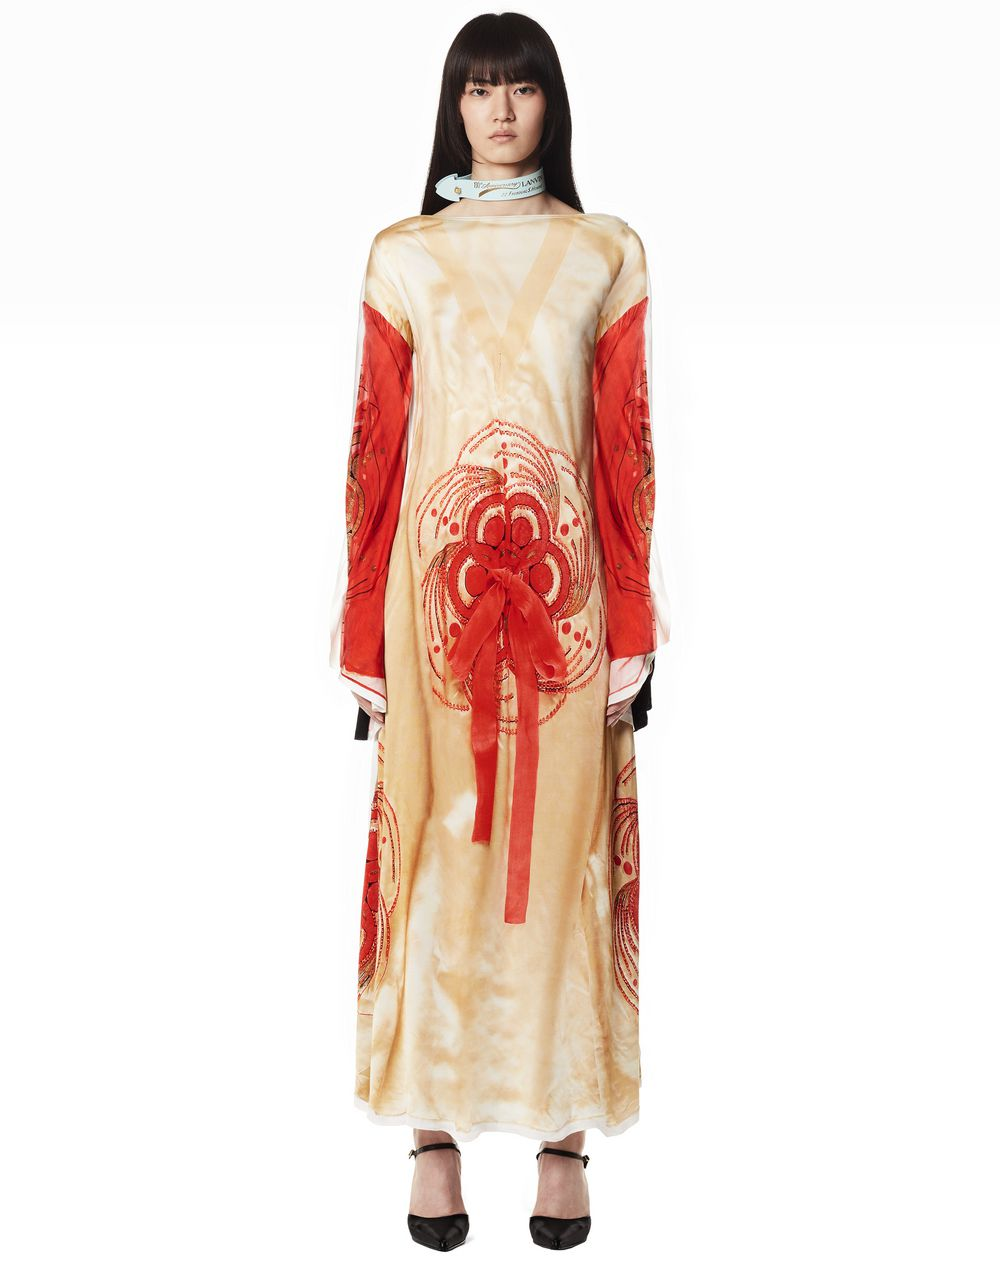 130 YEARS LONG IN LOVE PRINT DRESS - Lanvin